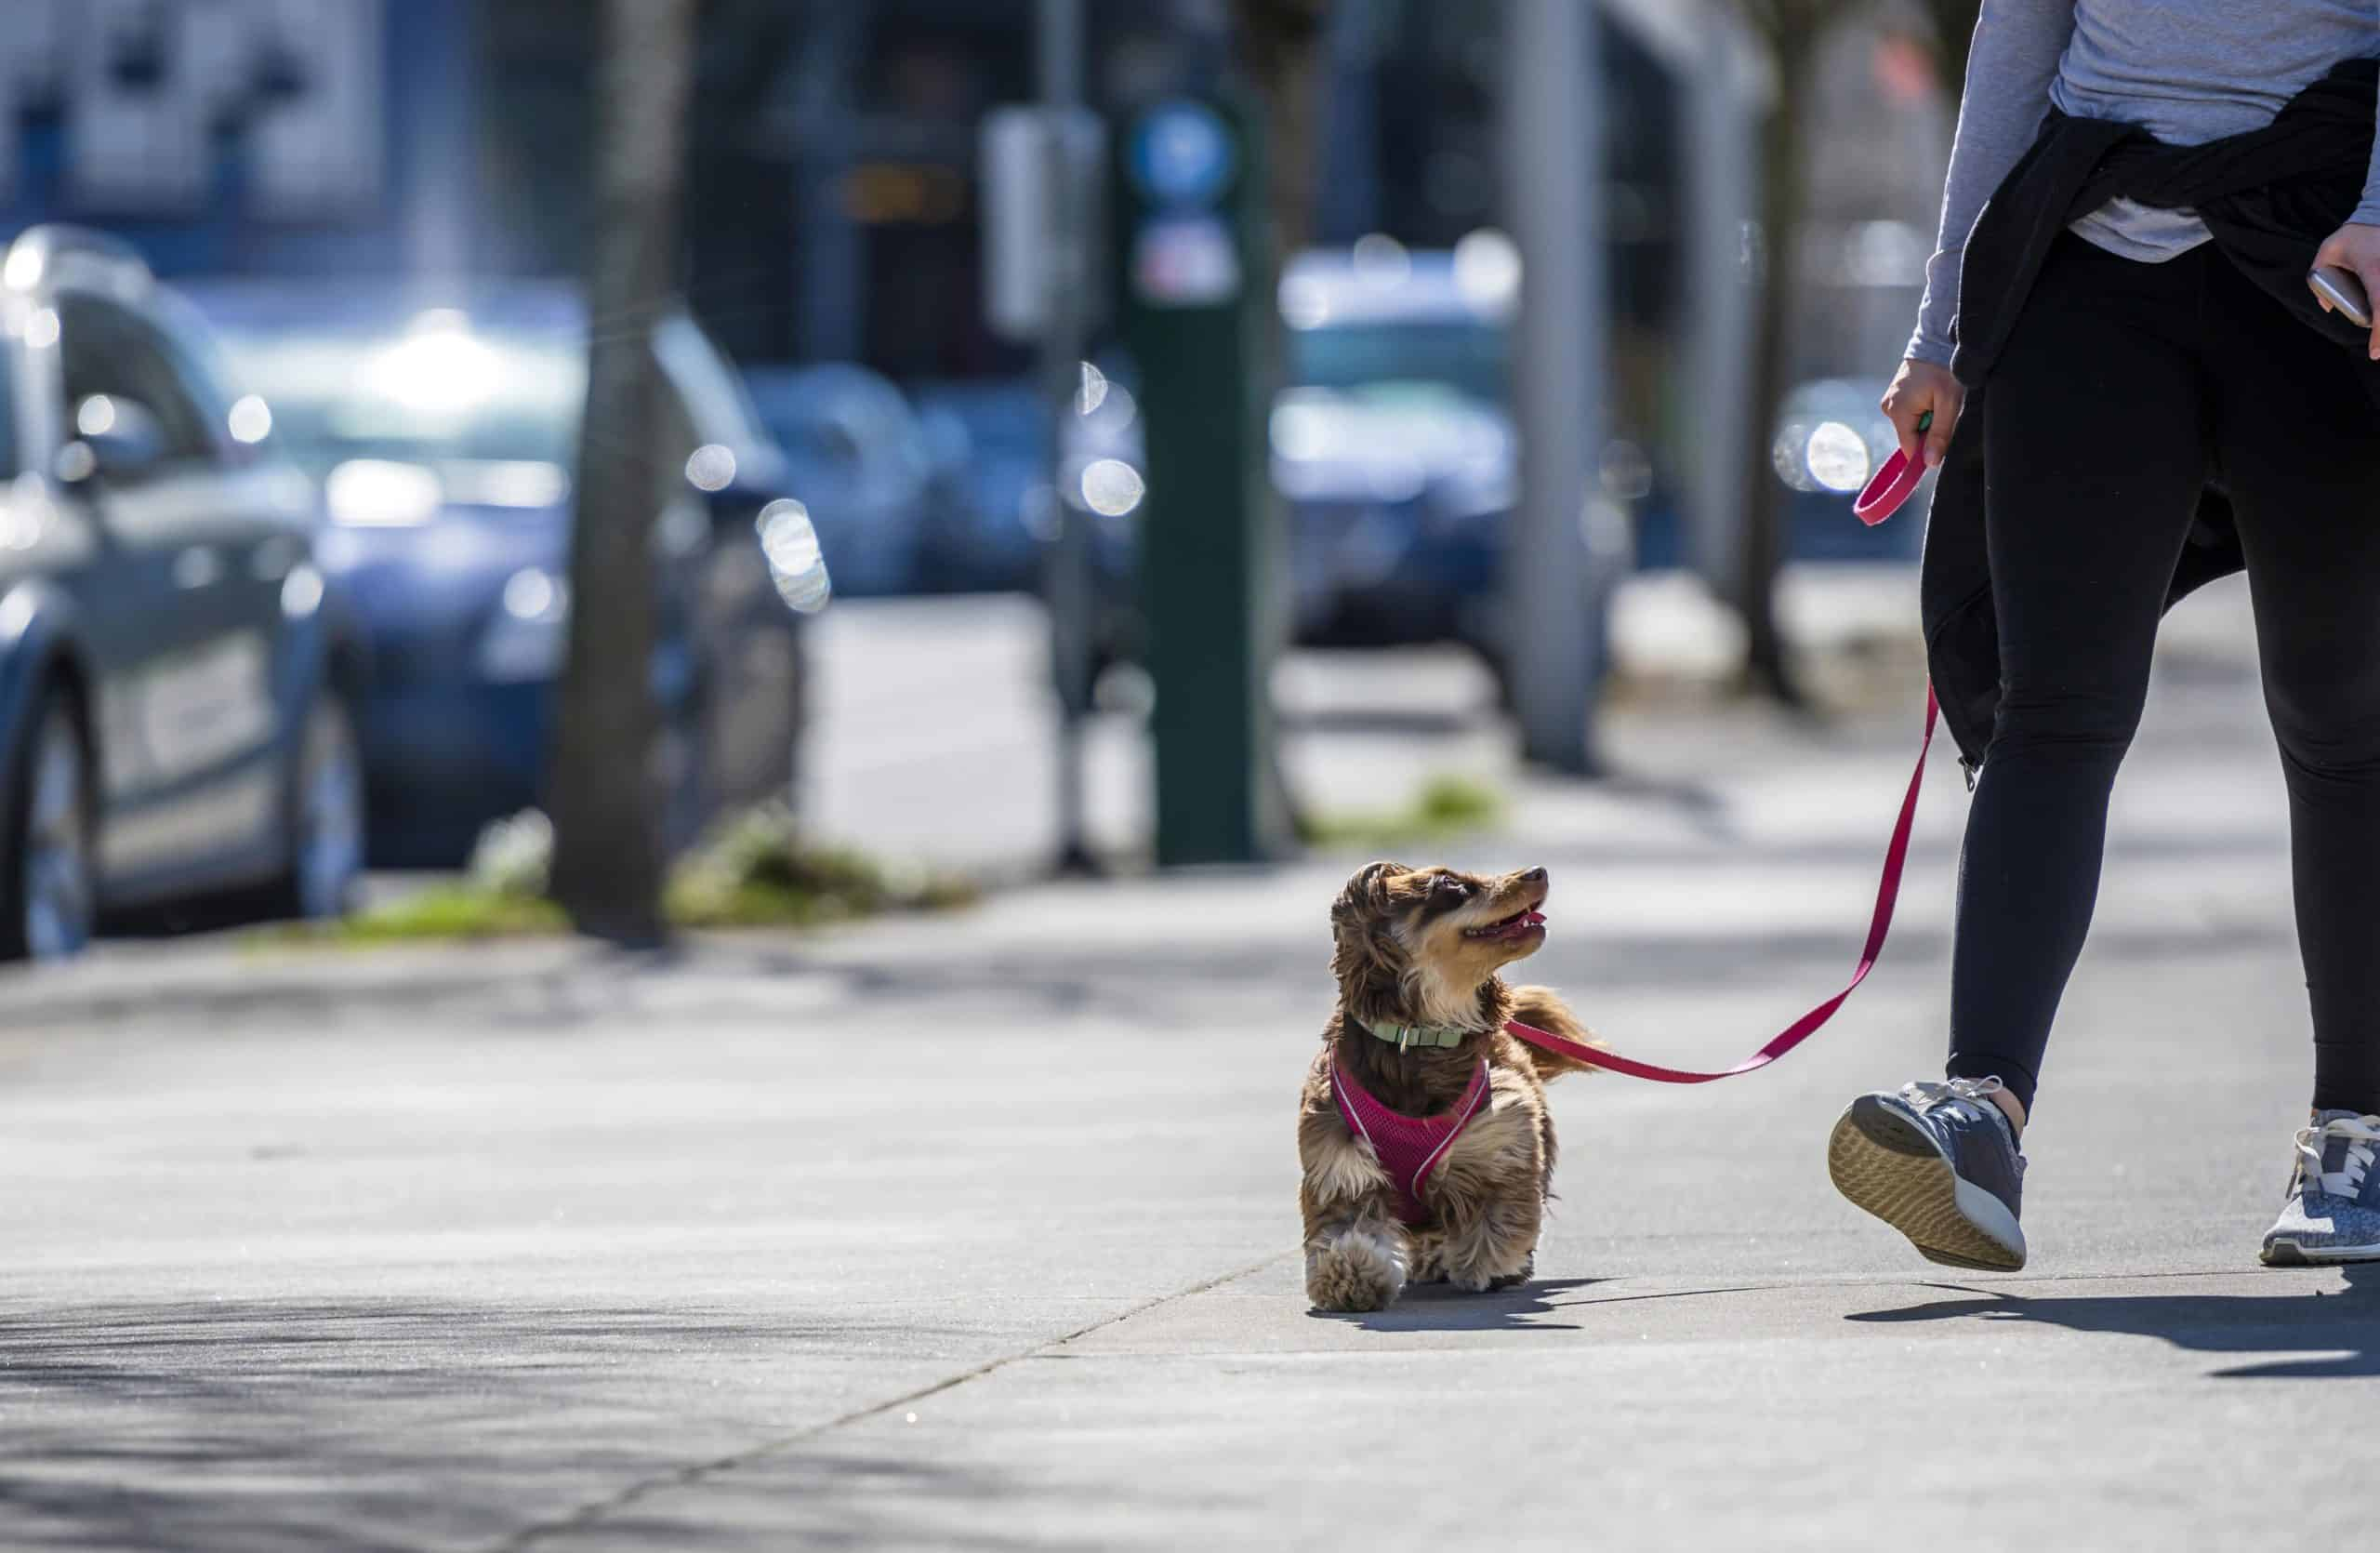 Owner takes dachshund for walk in the city. Some dogs struggle to adjust to the noise and crowds in the city.